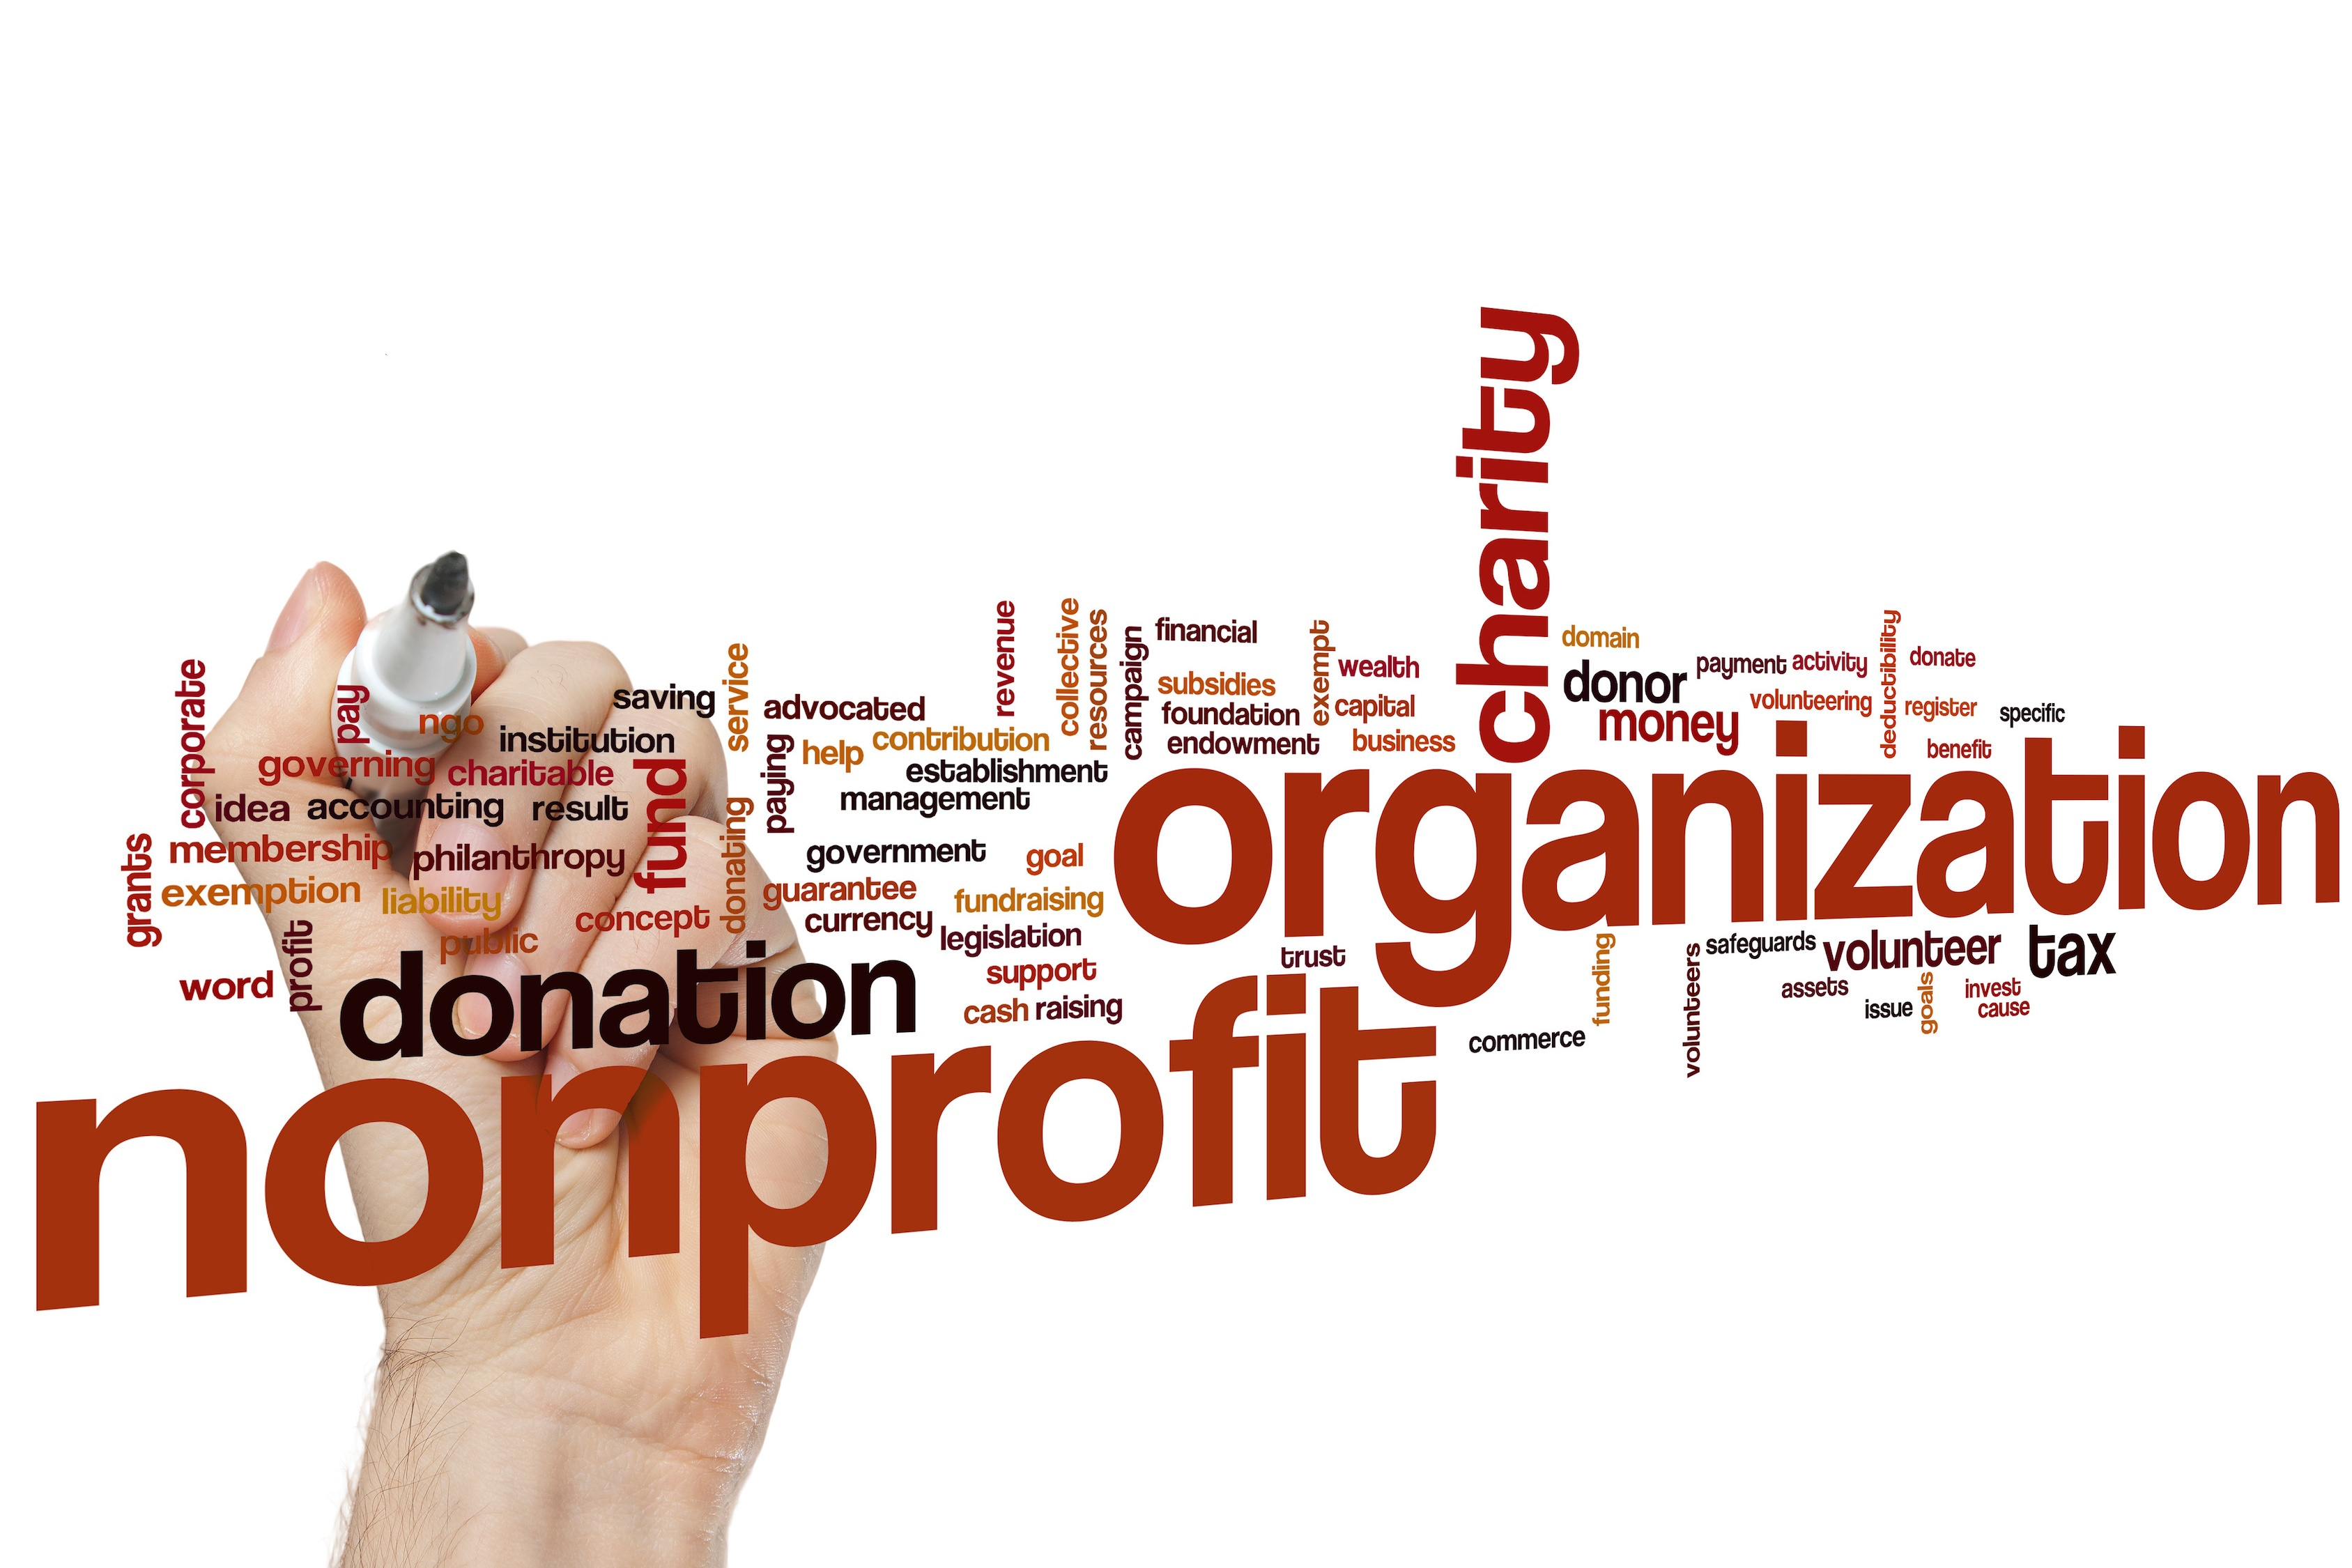 Nonprofit Organizations - Four Guideposts for IT Strategy and Cyber Security